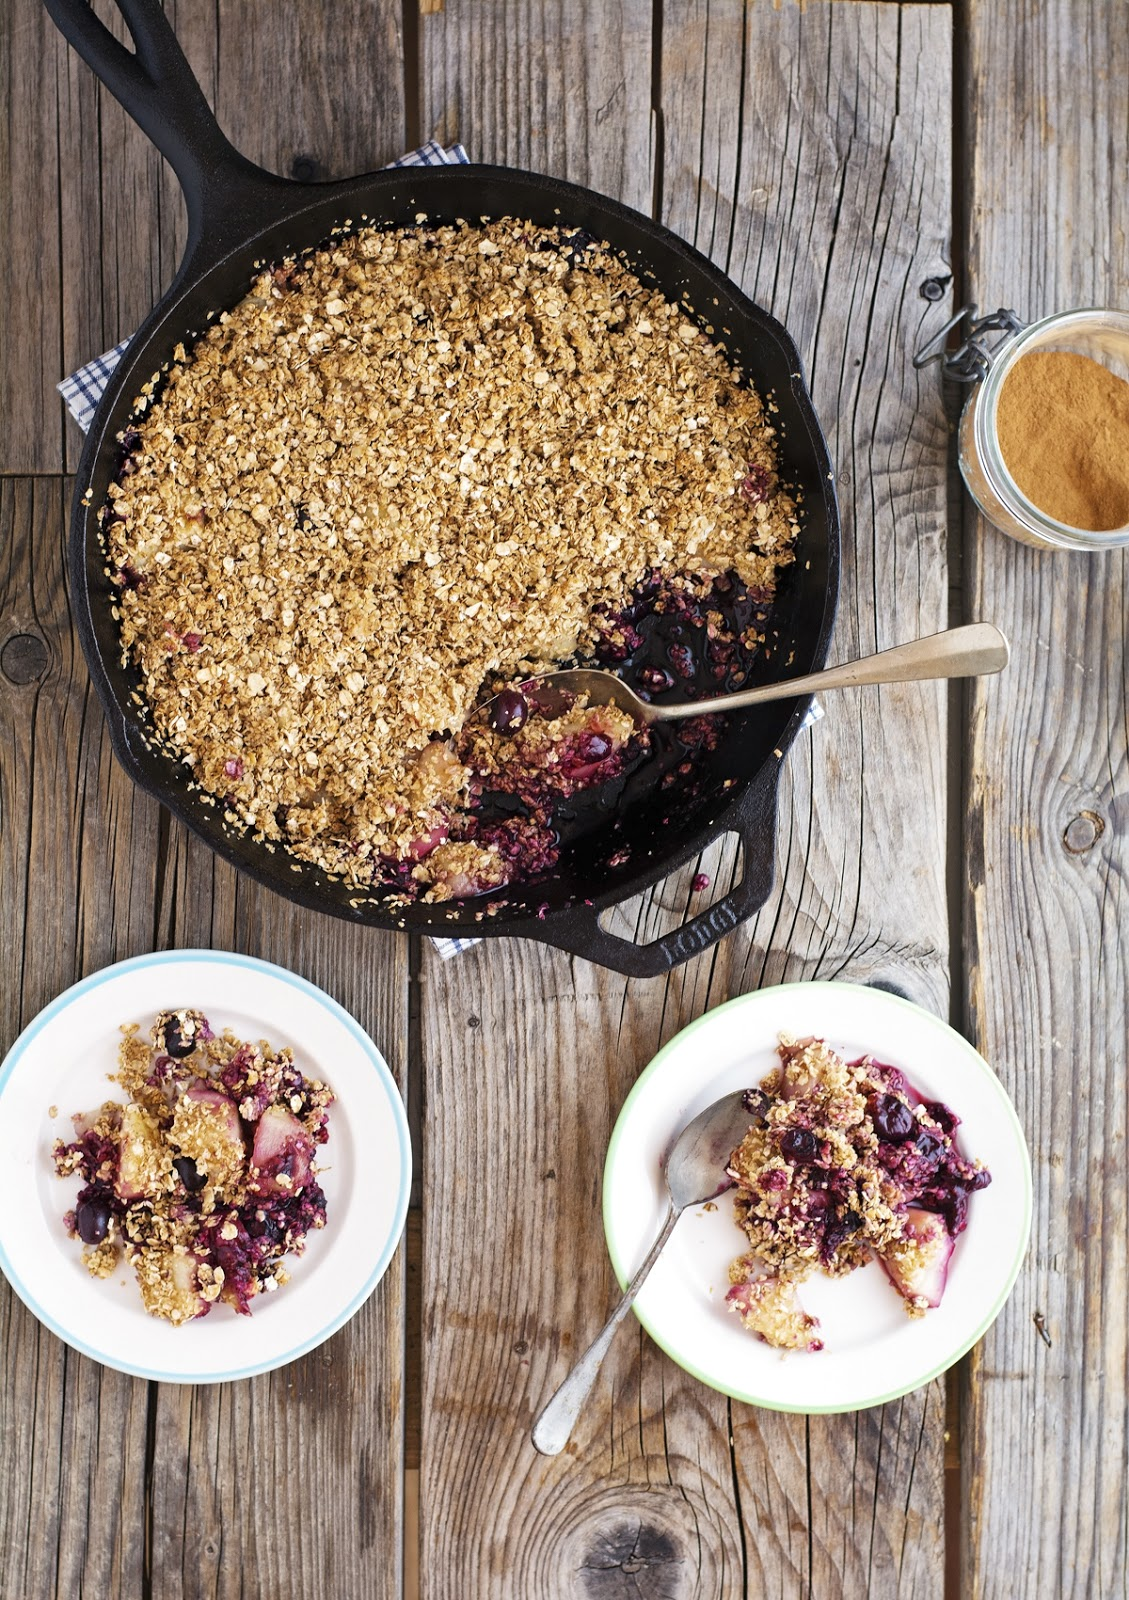 Maple Peach Blueberry Crumble (Vegan and Gluten-Free)